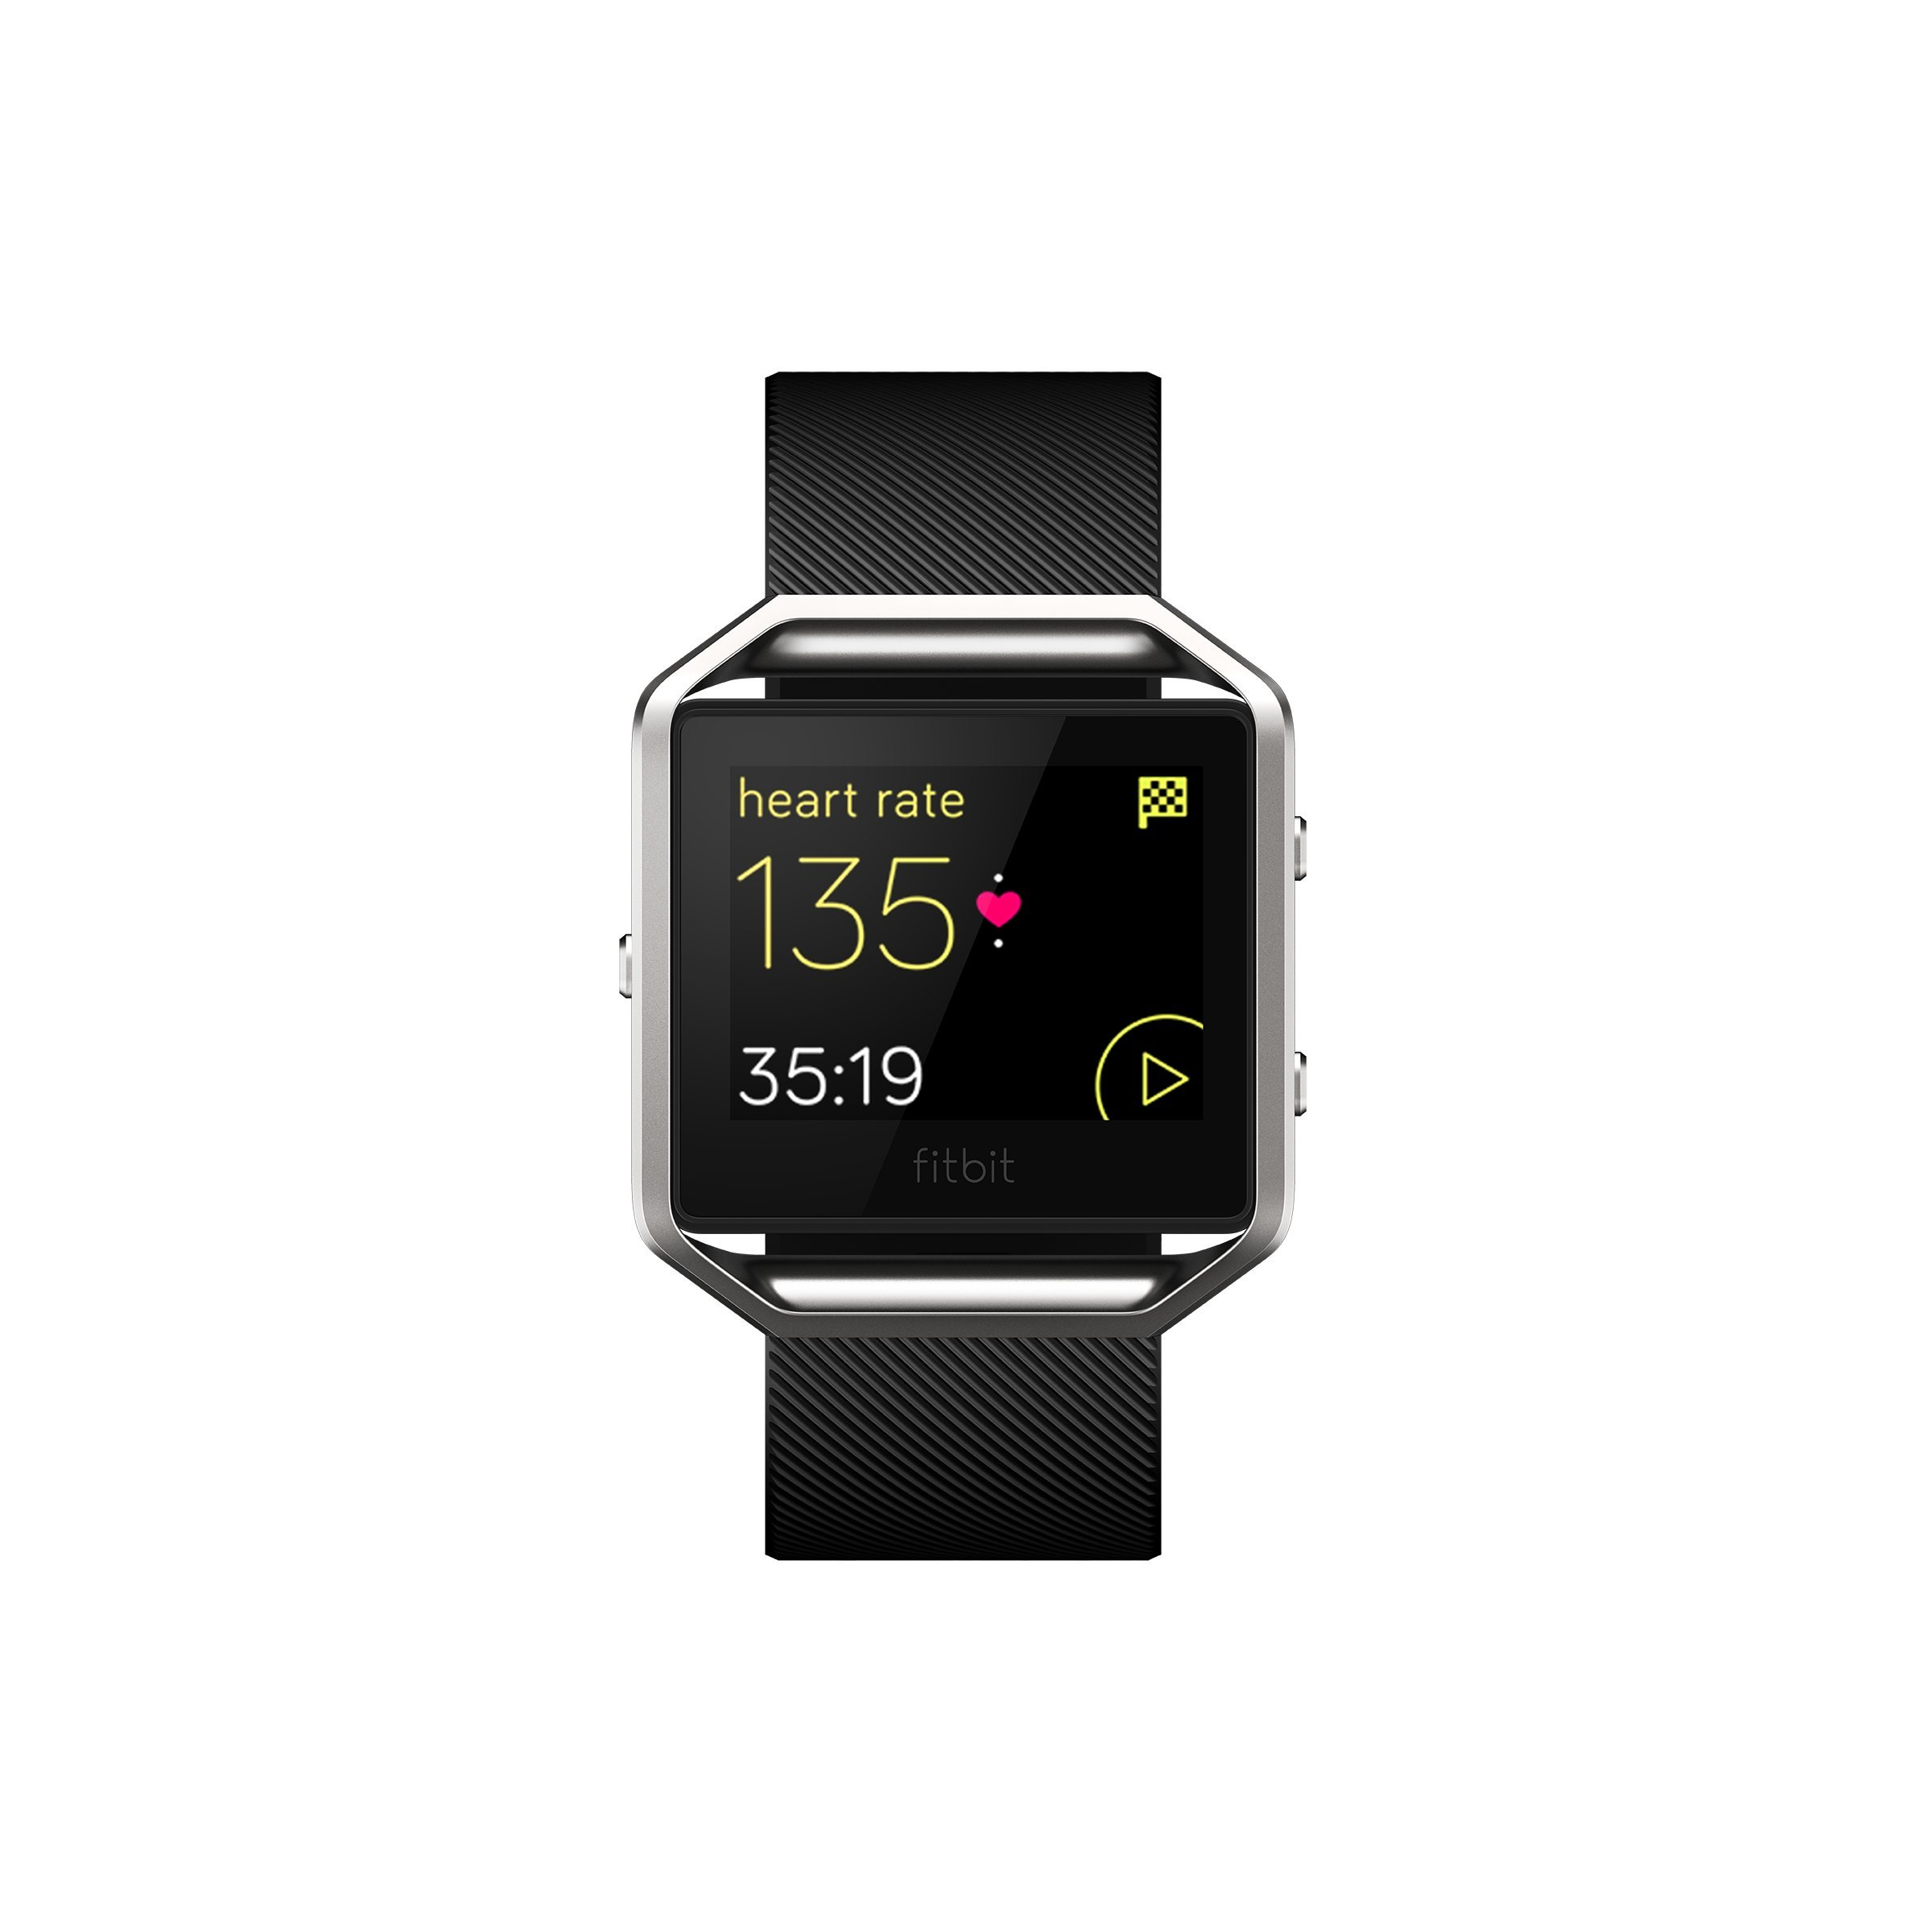 Fitbit Blaze Smart Fitness Watch, Black, Silver, Large (US Version) by Fitbit (Image #2)